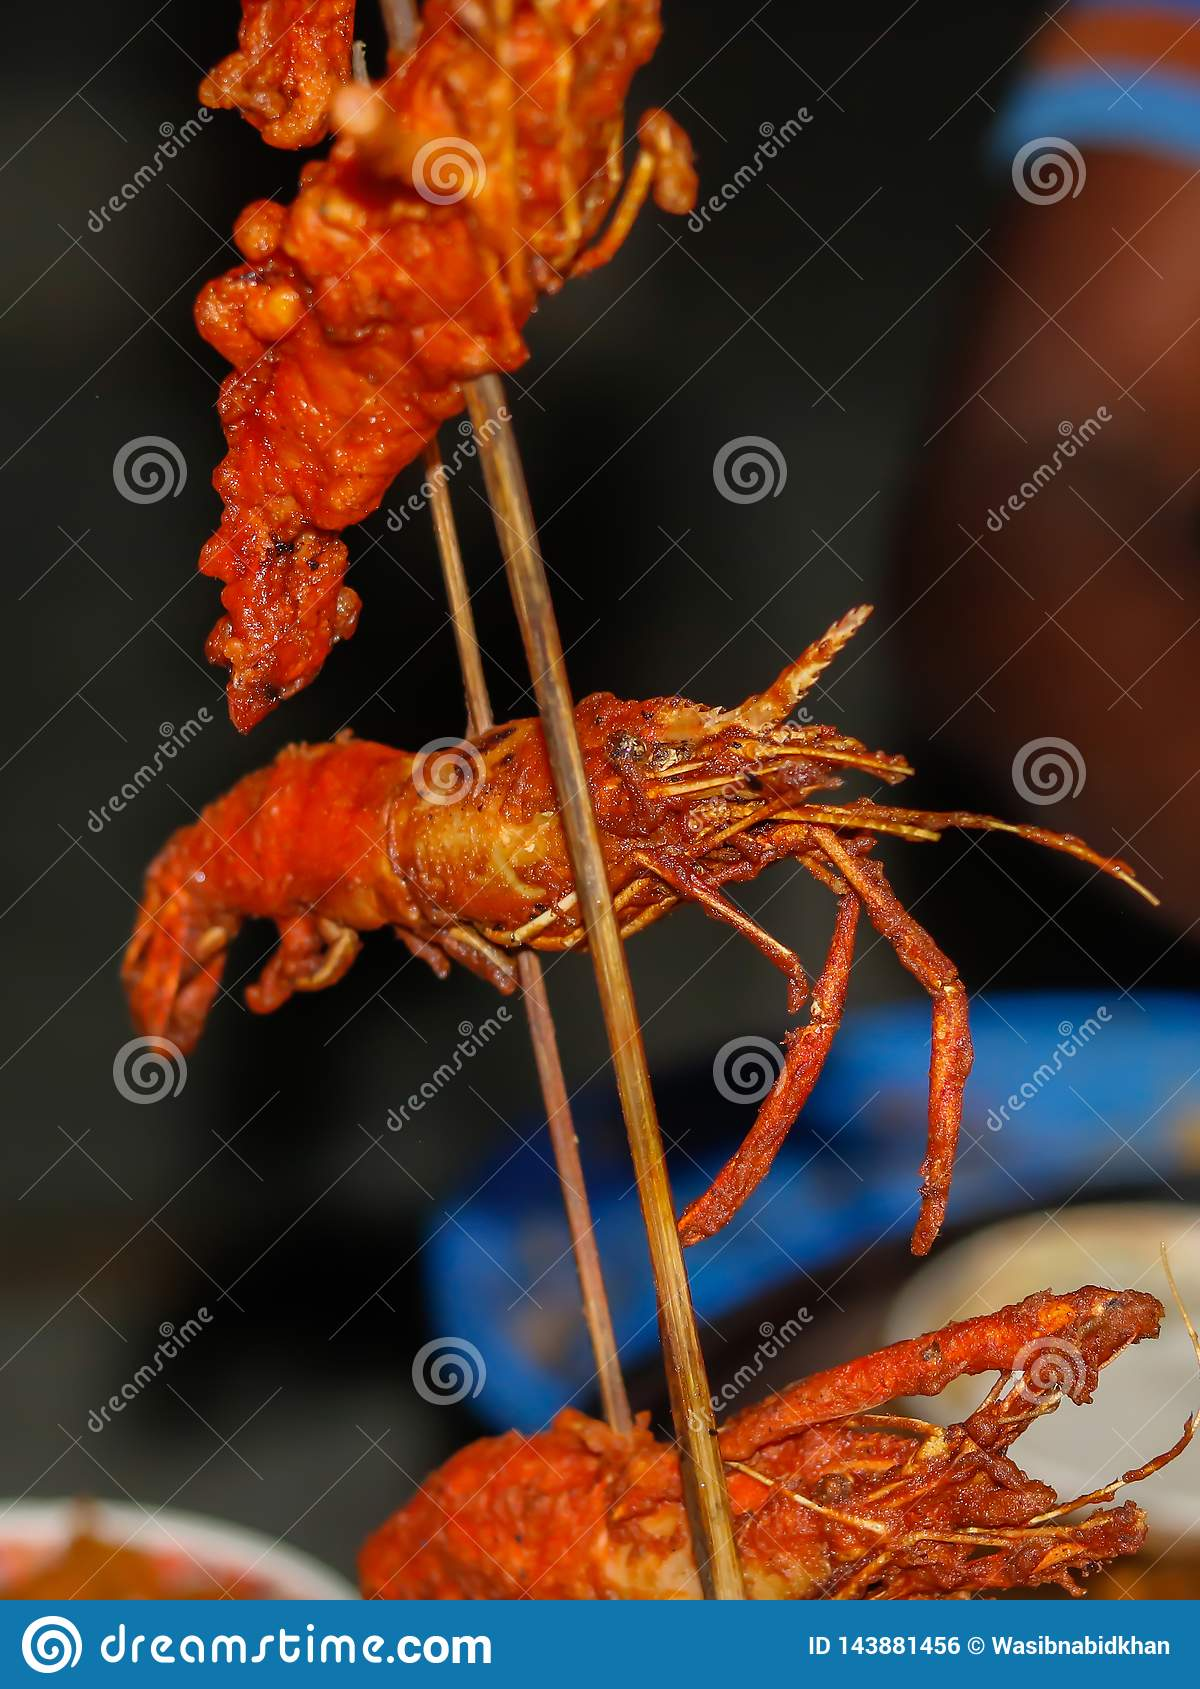 Fried sea food in a stick